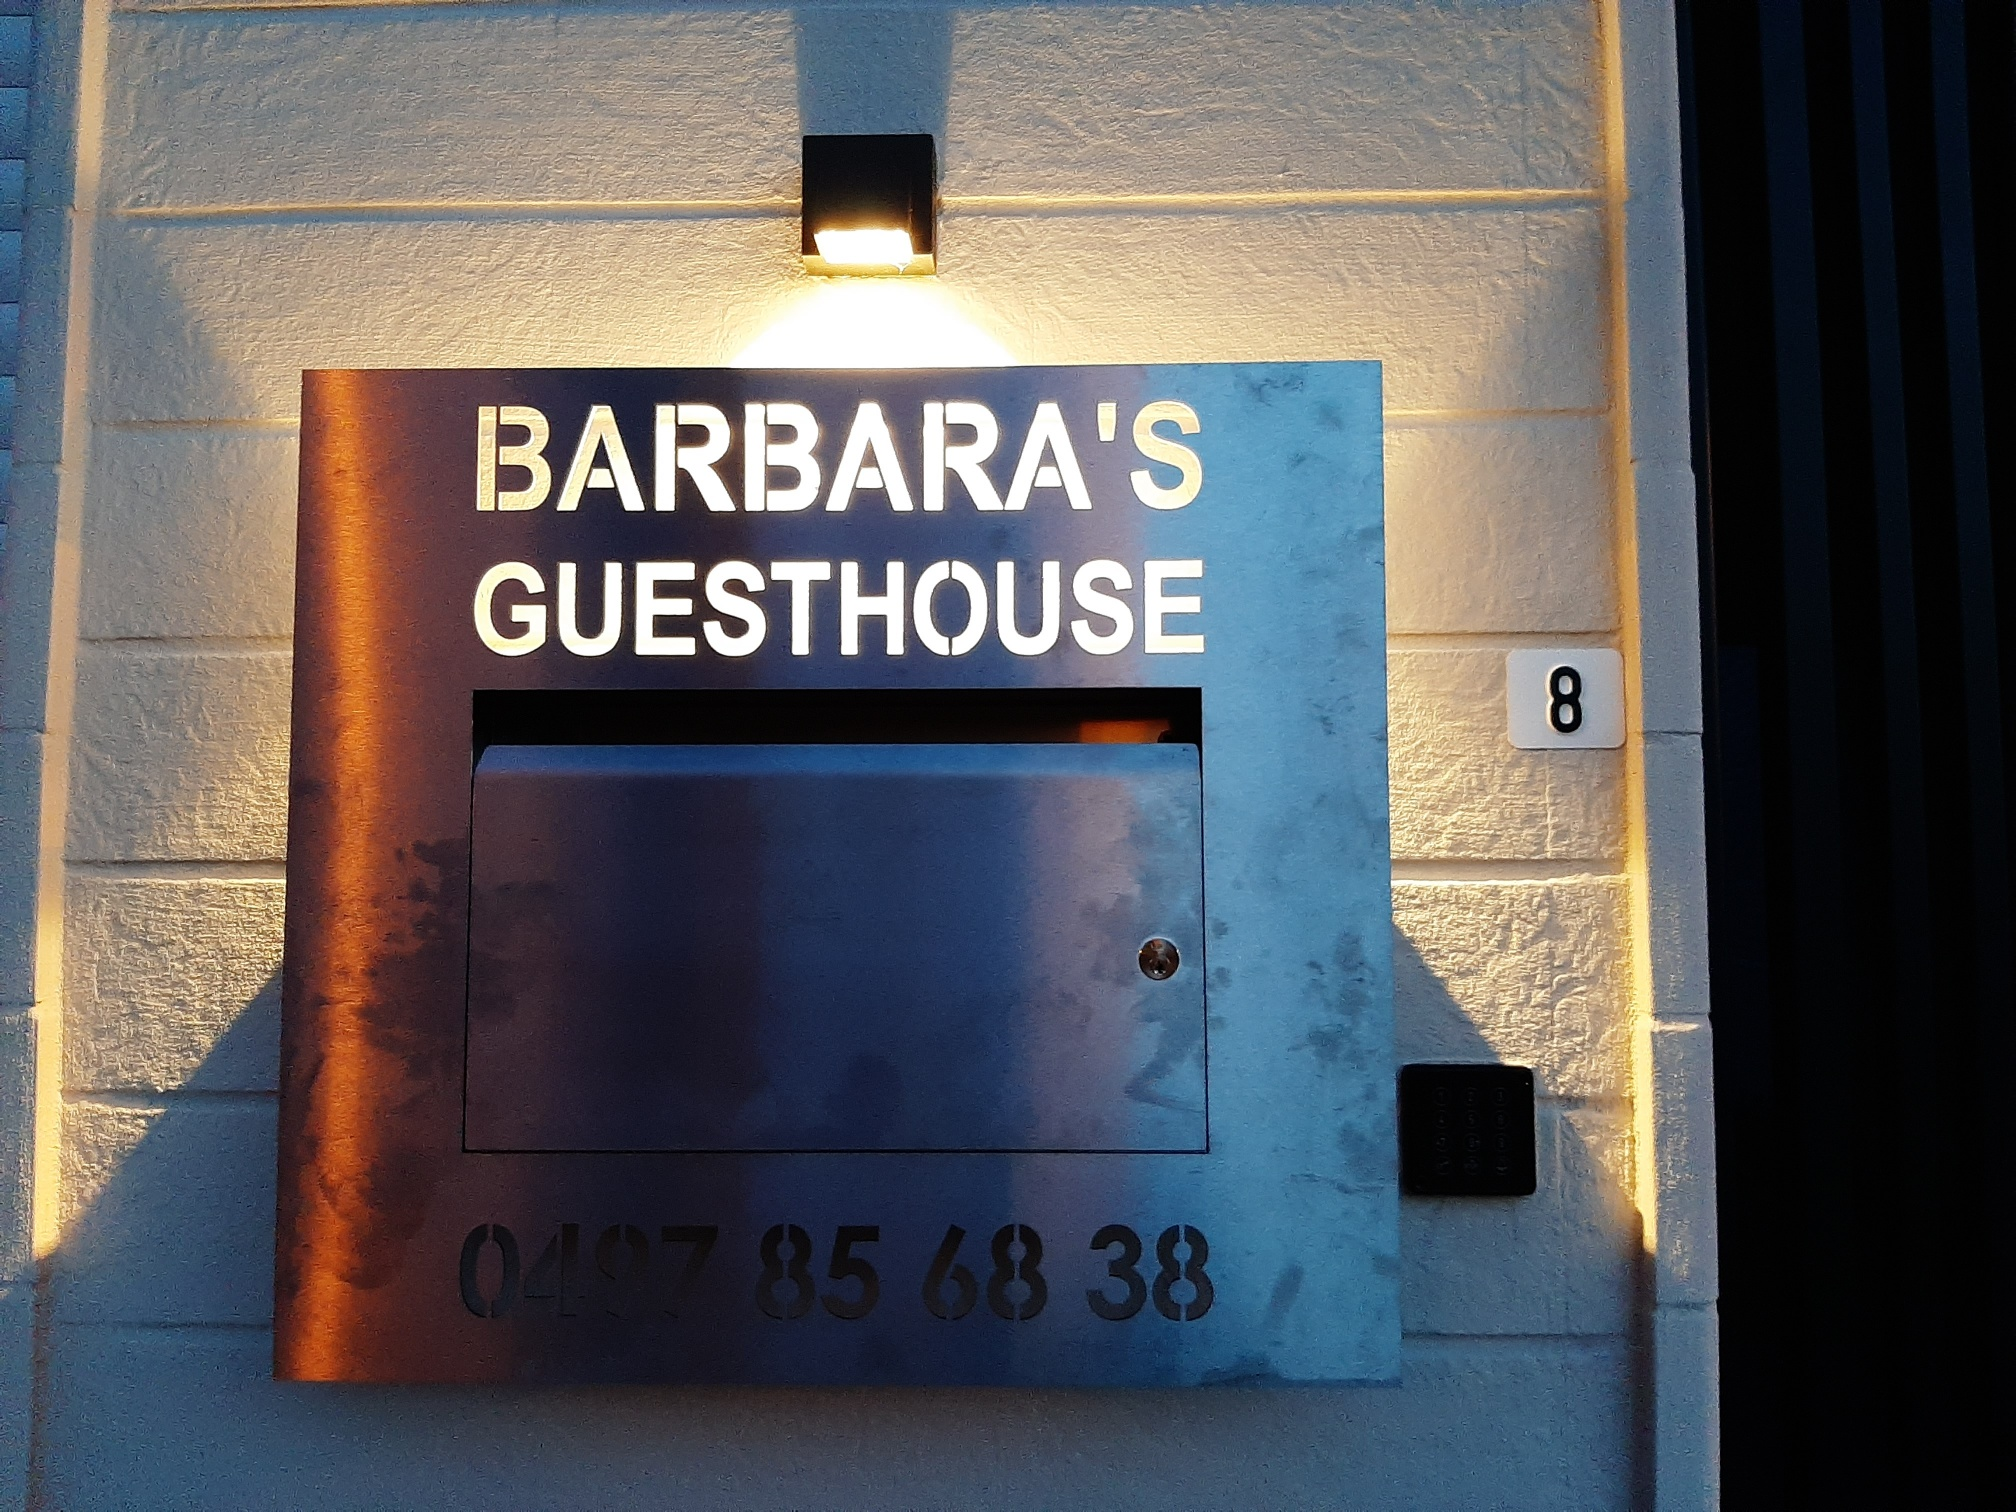 Barbara's Guesthouse